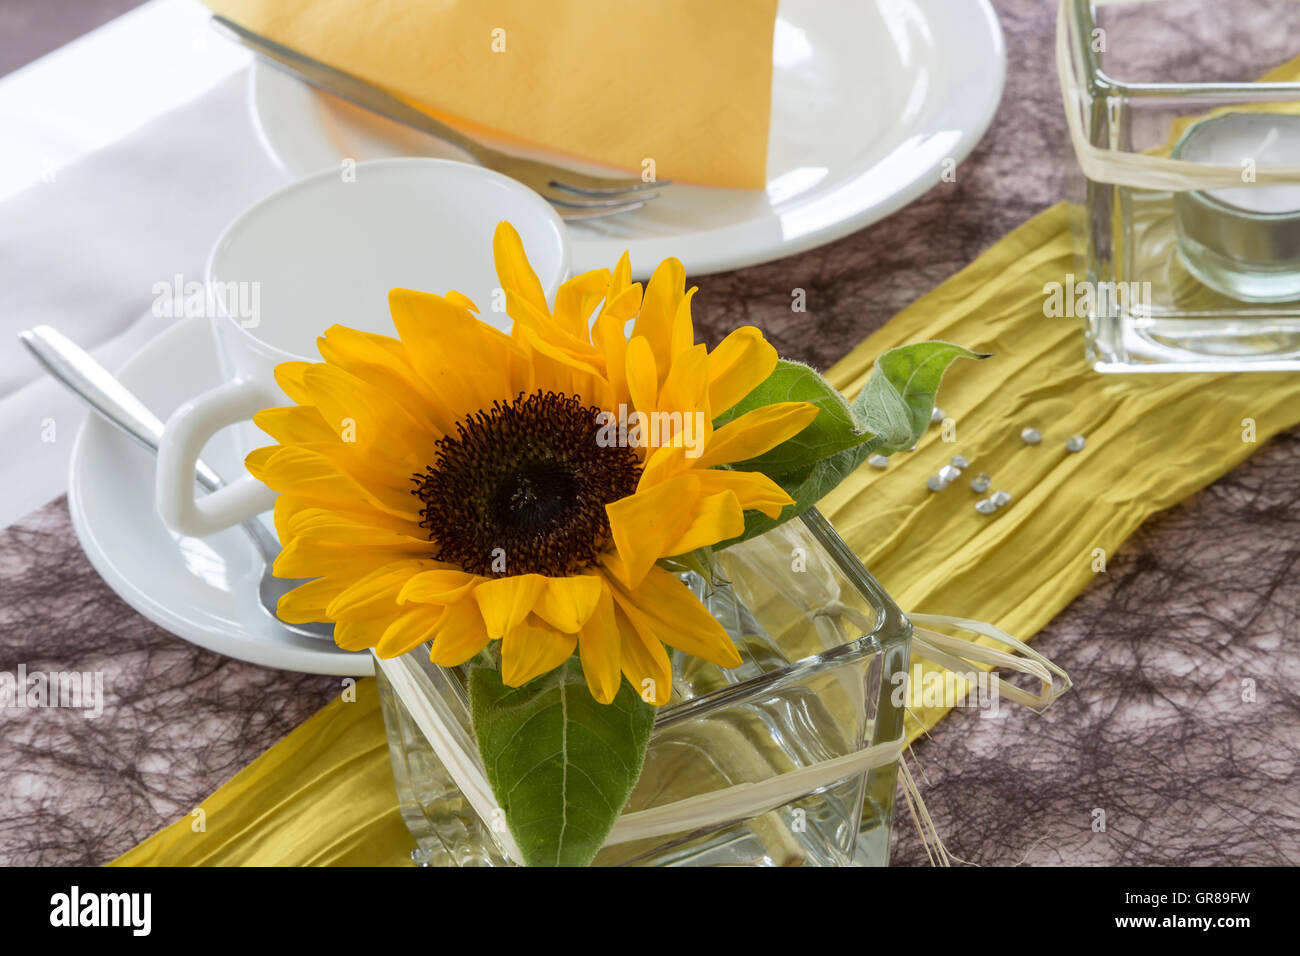 Inviting Covered Table In A Dining Room - Stock Image